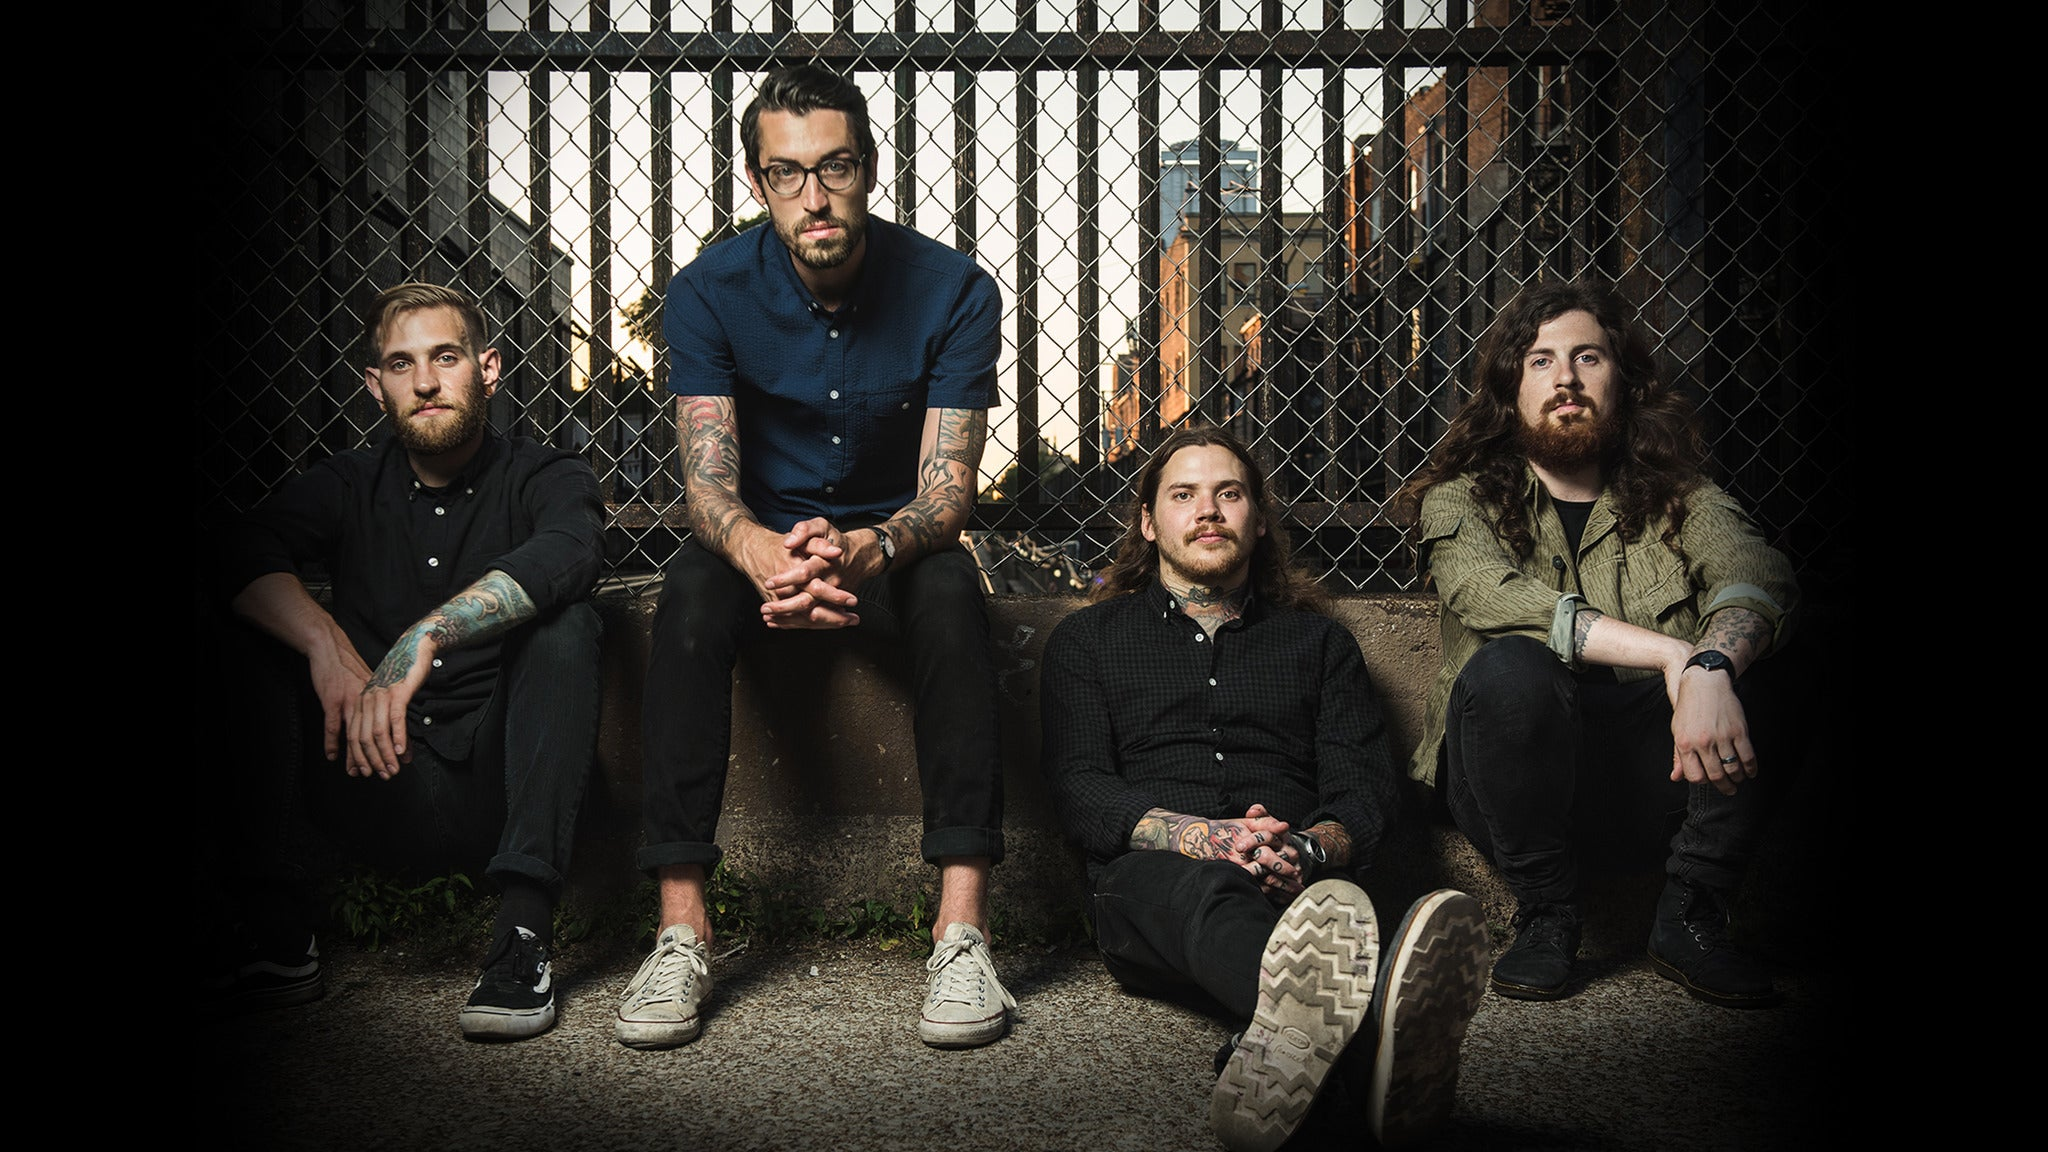 The Devil Wears Prada at Blue Moose Tap House